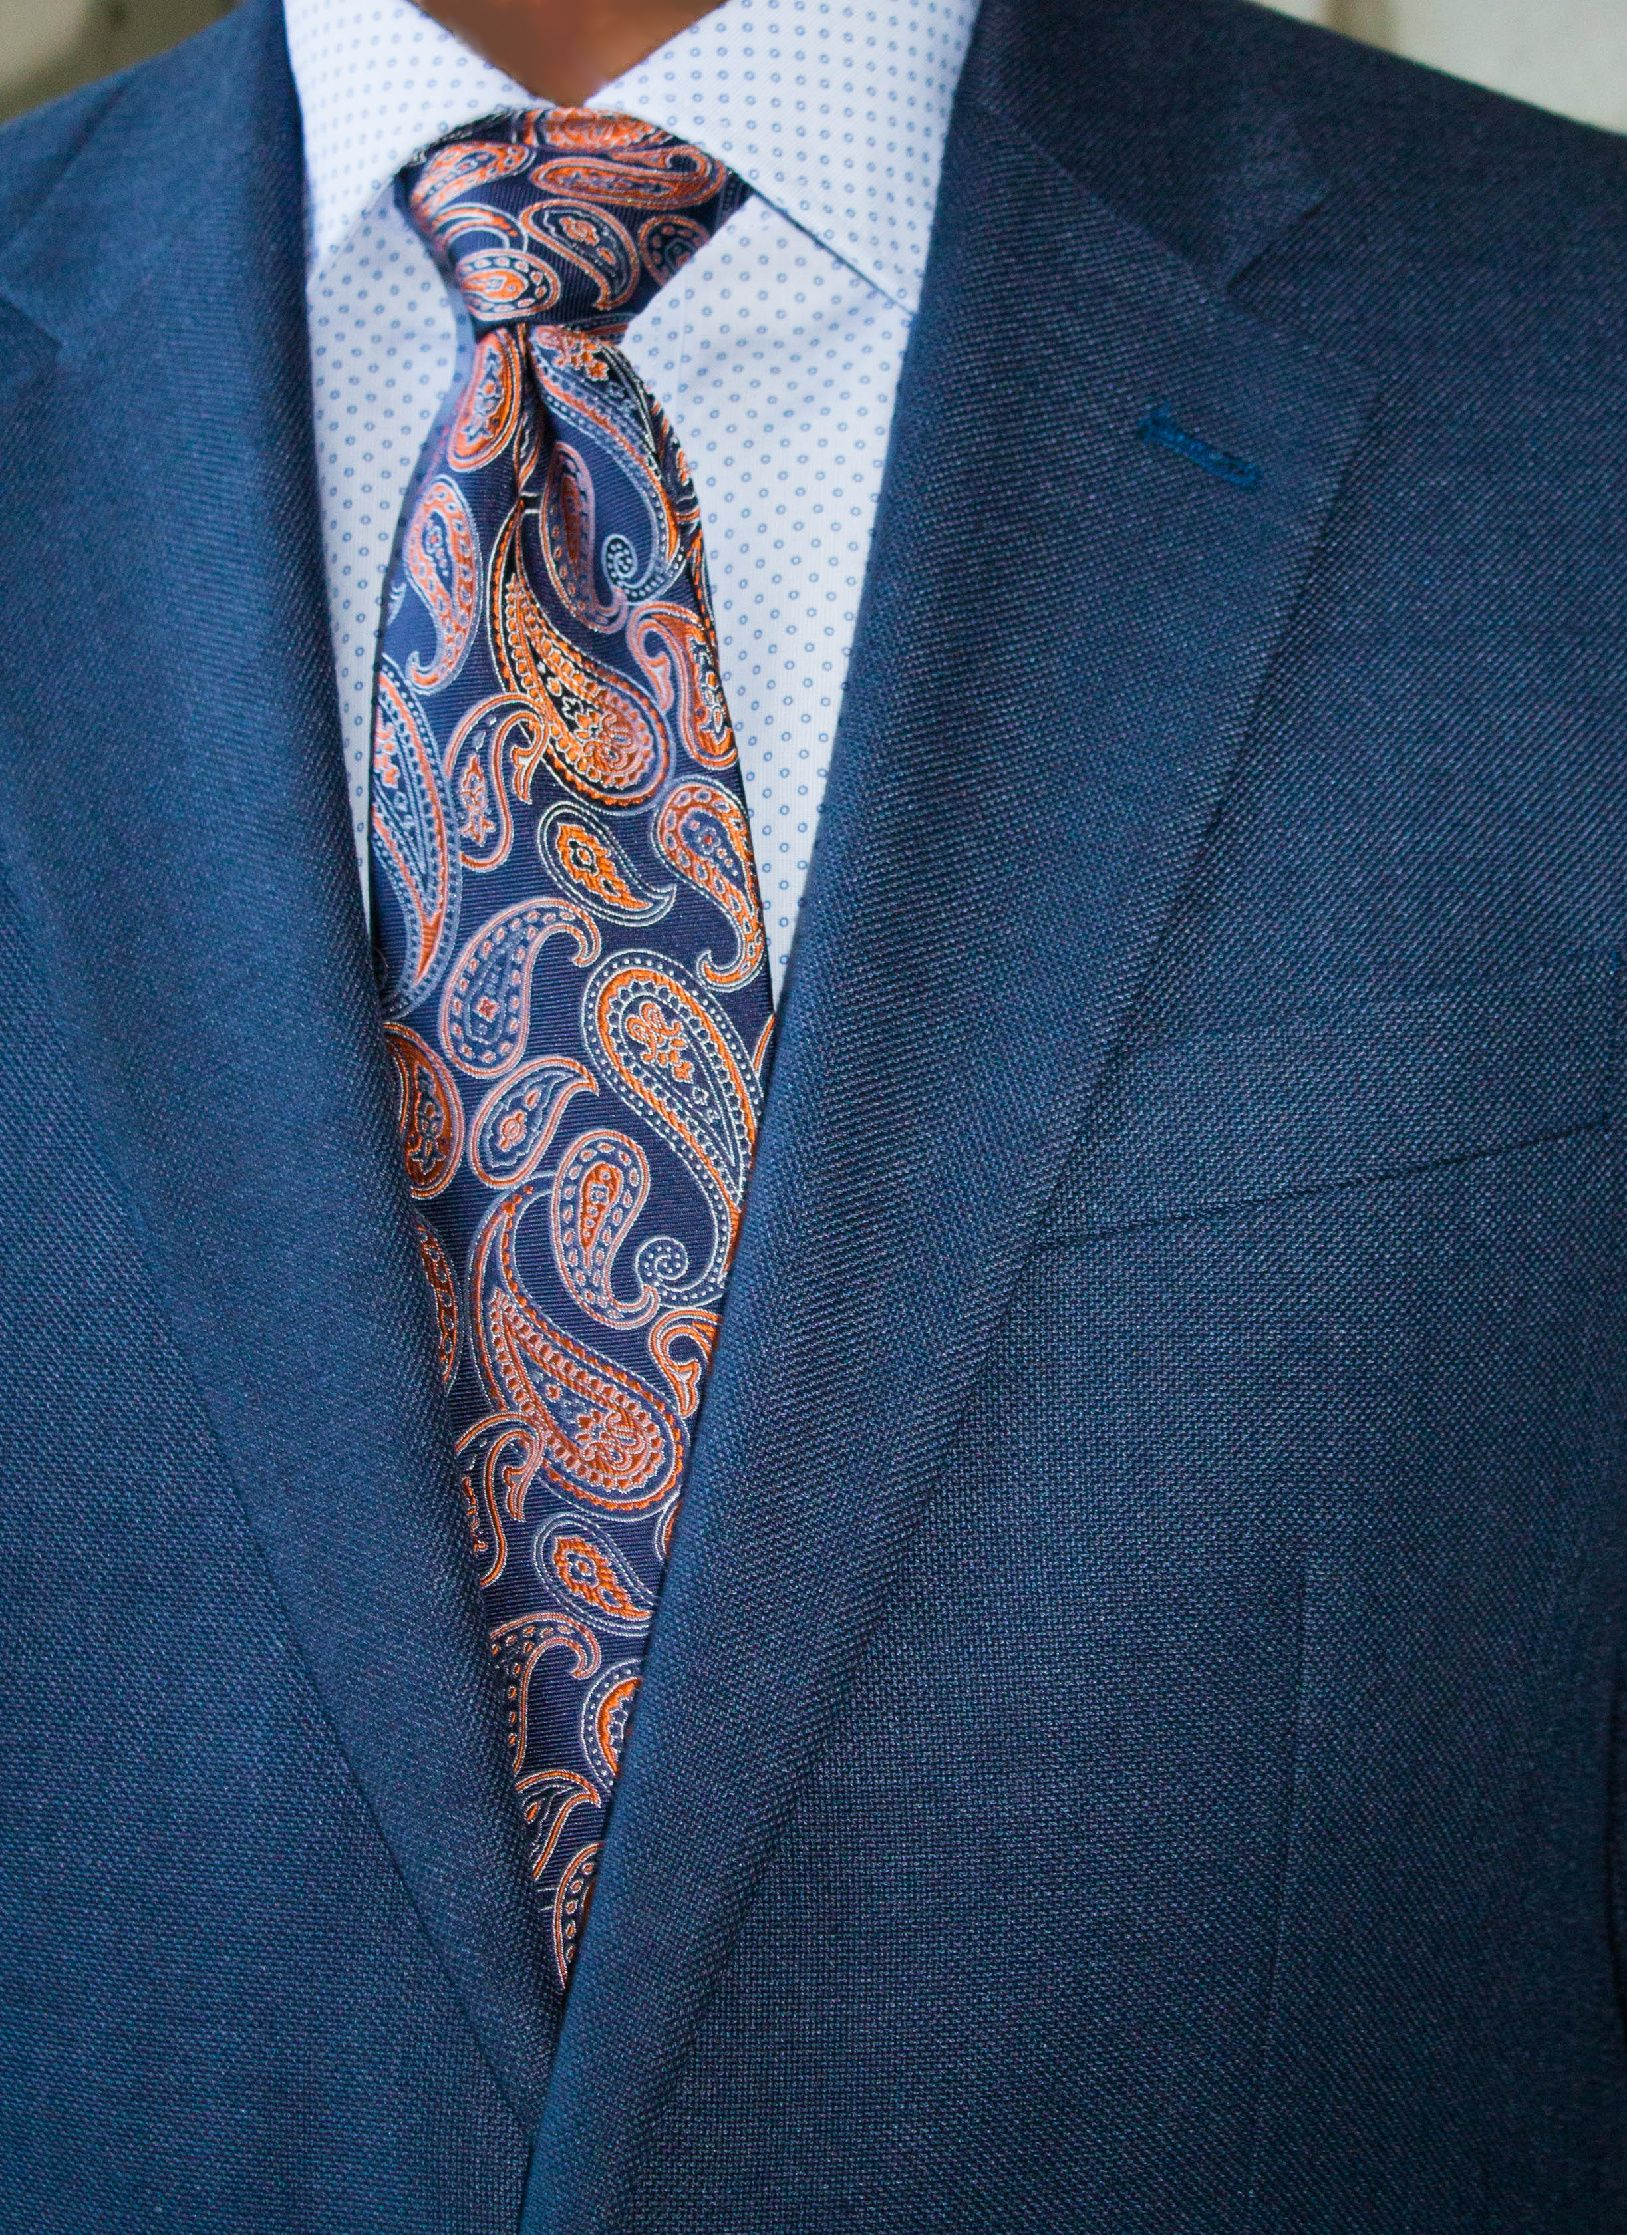 a723445f0d67 Navy suit with paisley tie. The subtle polka dots in this shirt pairs  nicely with the tie.